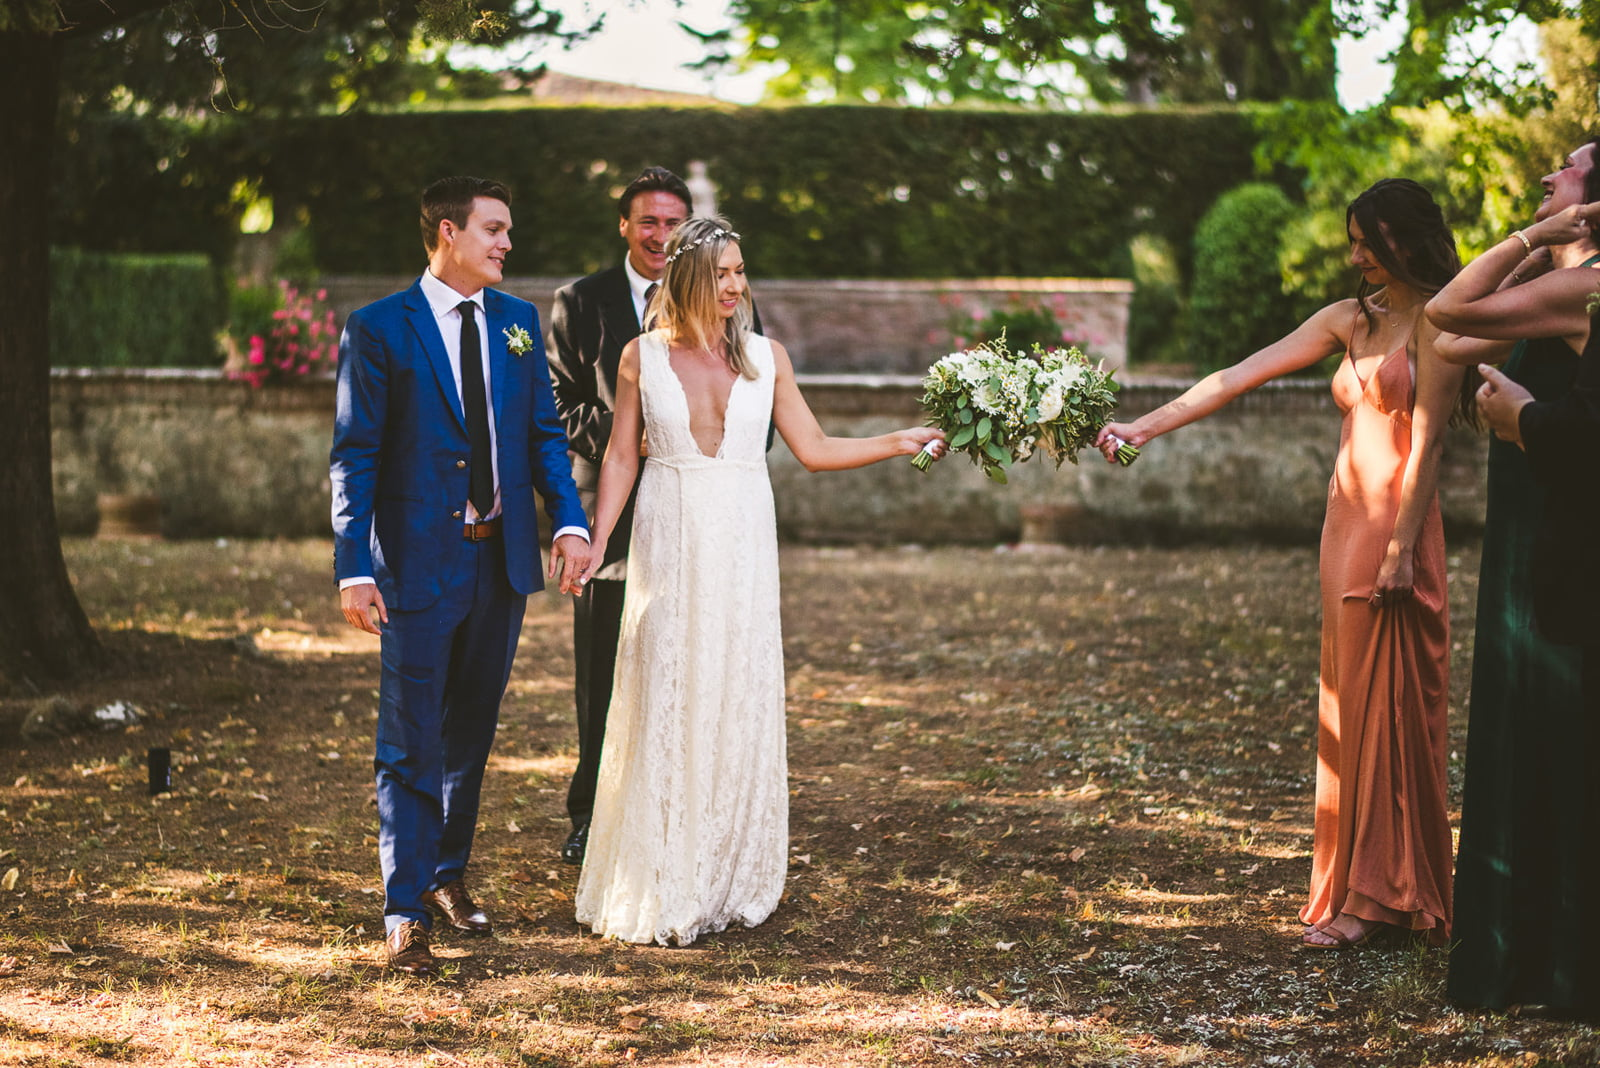 A+L Wedding at Montechiaro, Siena by Federico Pannacci 61